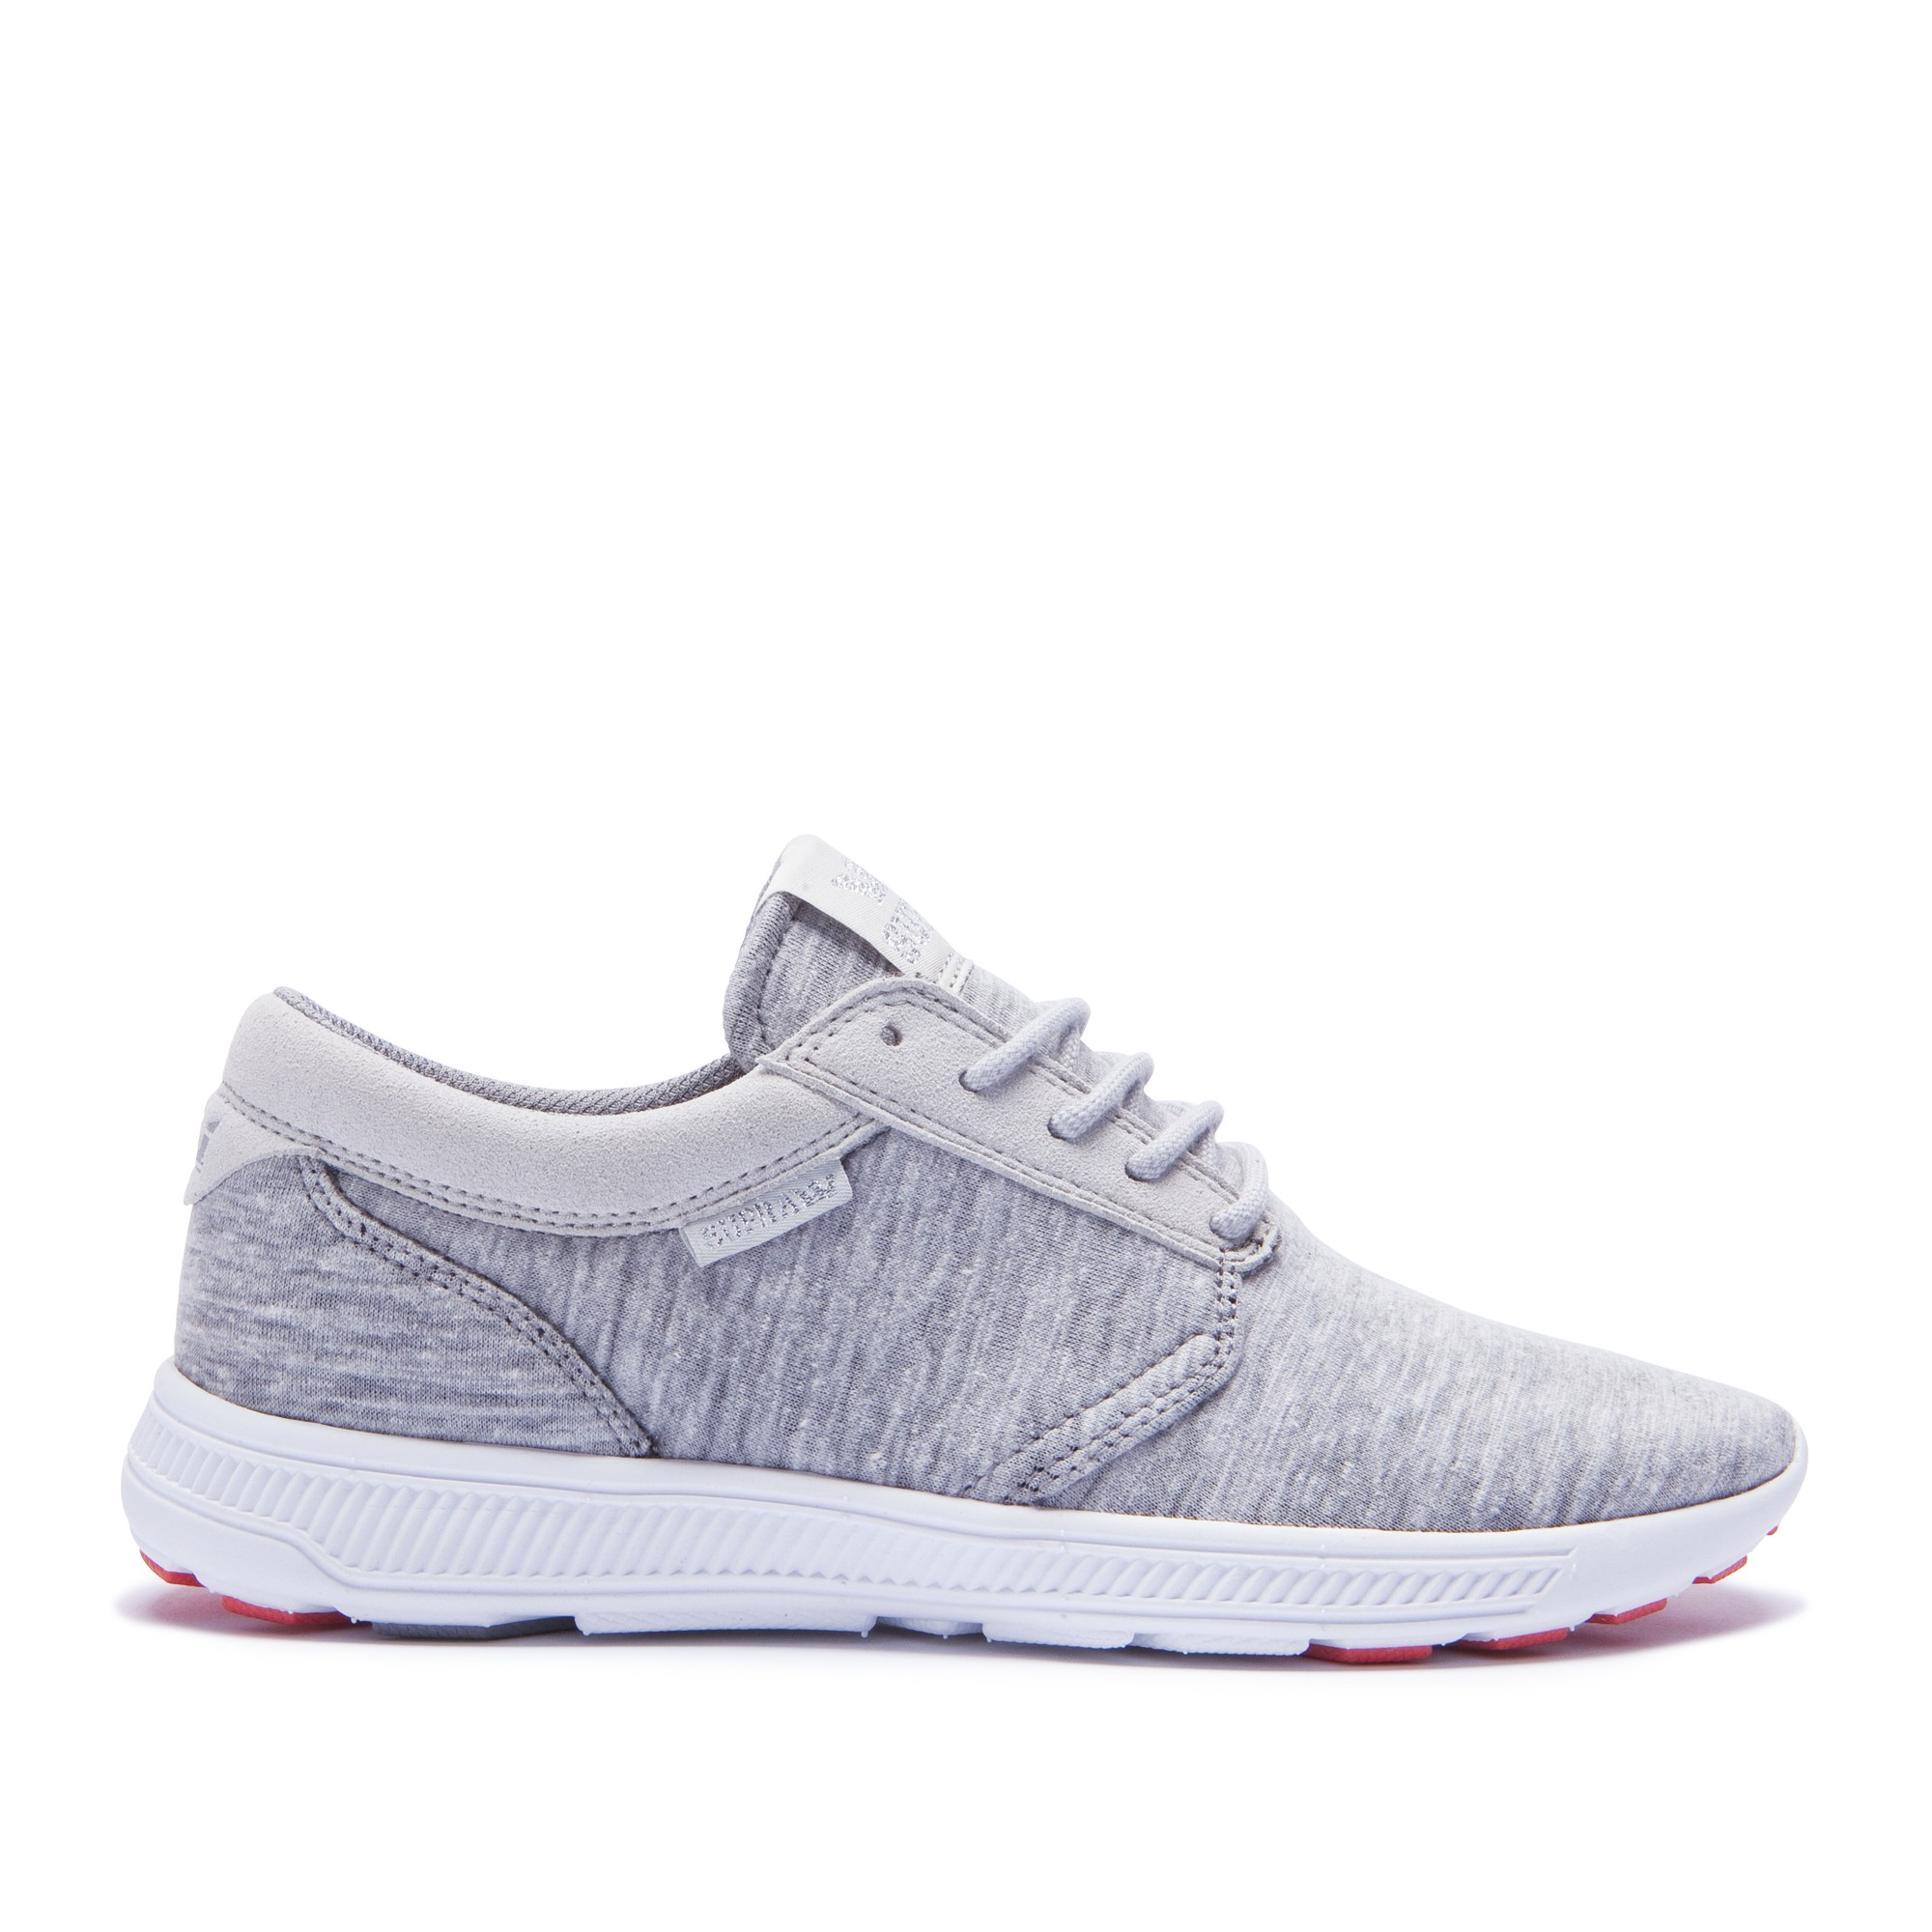 Grey Run Zapatillas Supra Blanco Hammer qUWOp4wxa